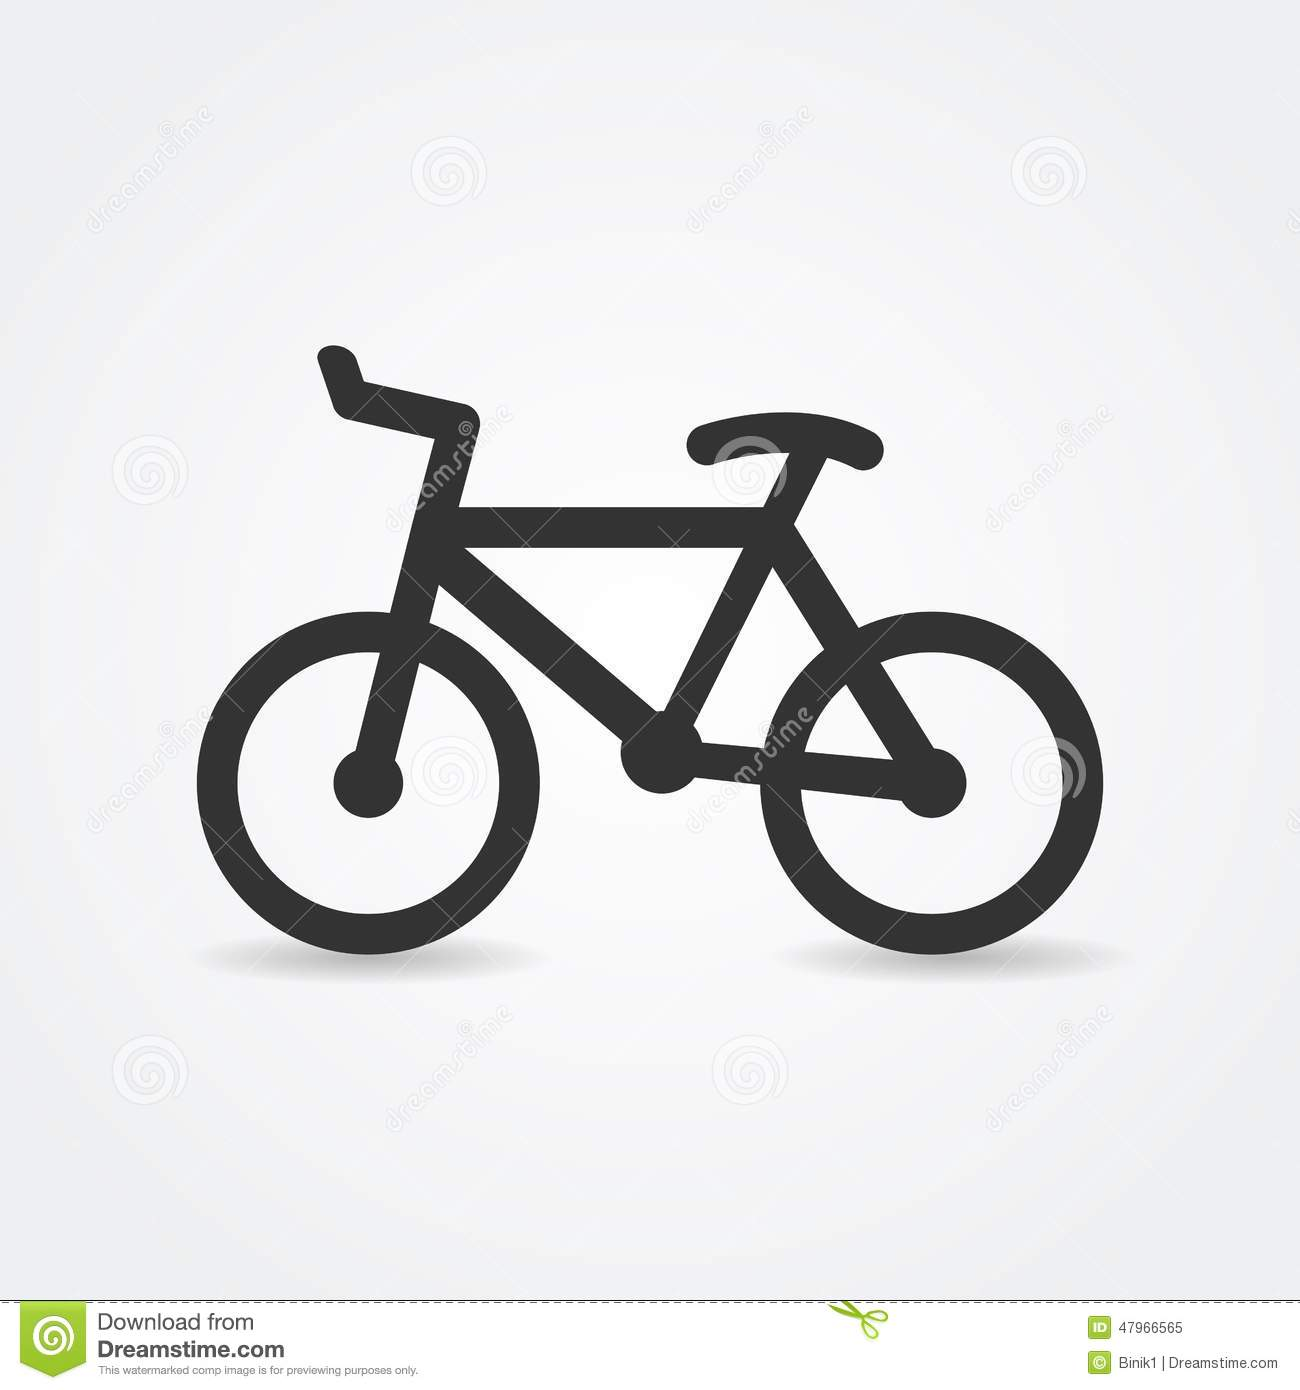 Simple bicycle illustration - photo#14